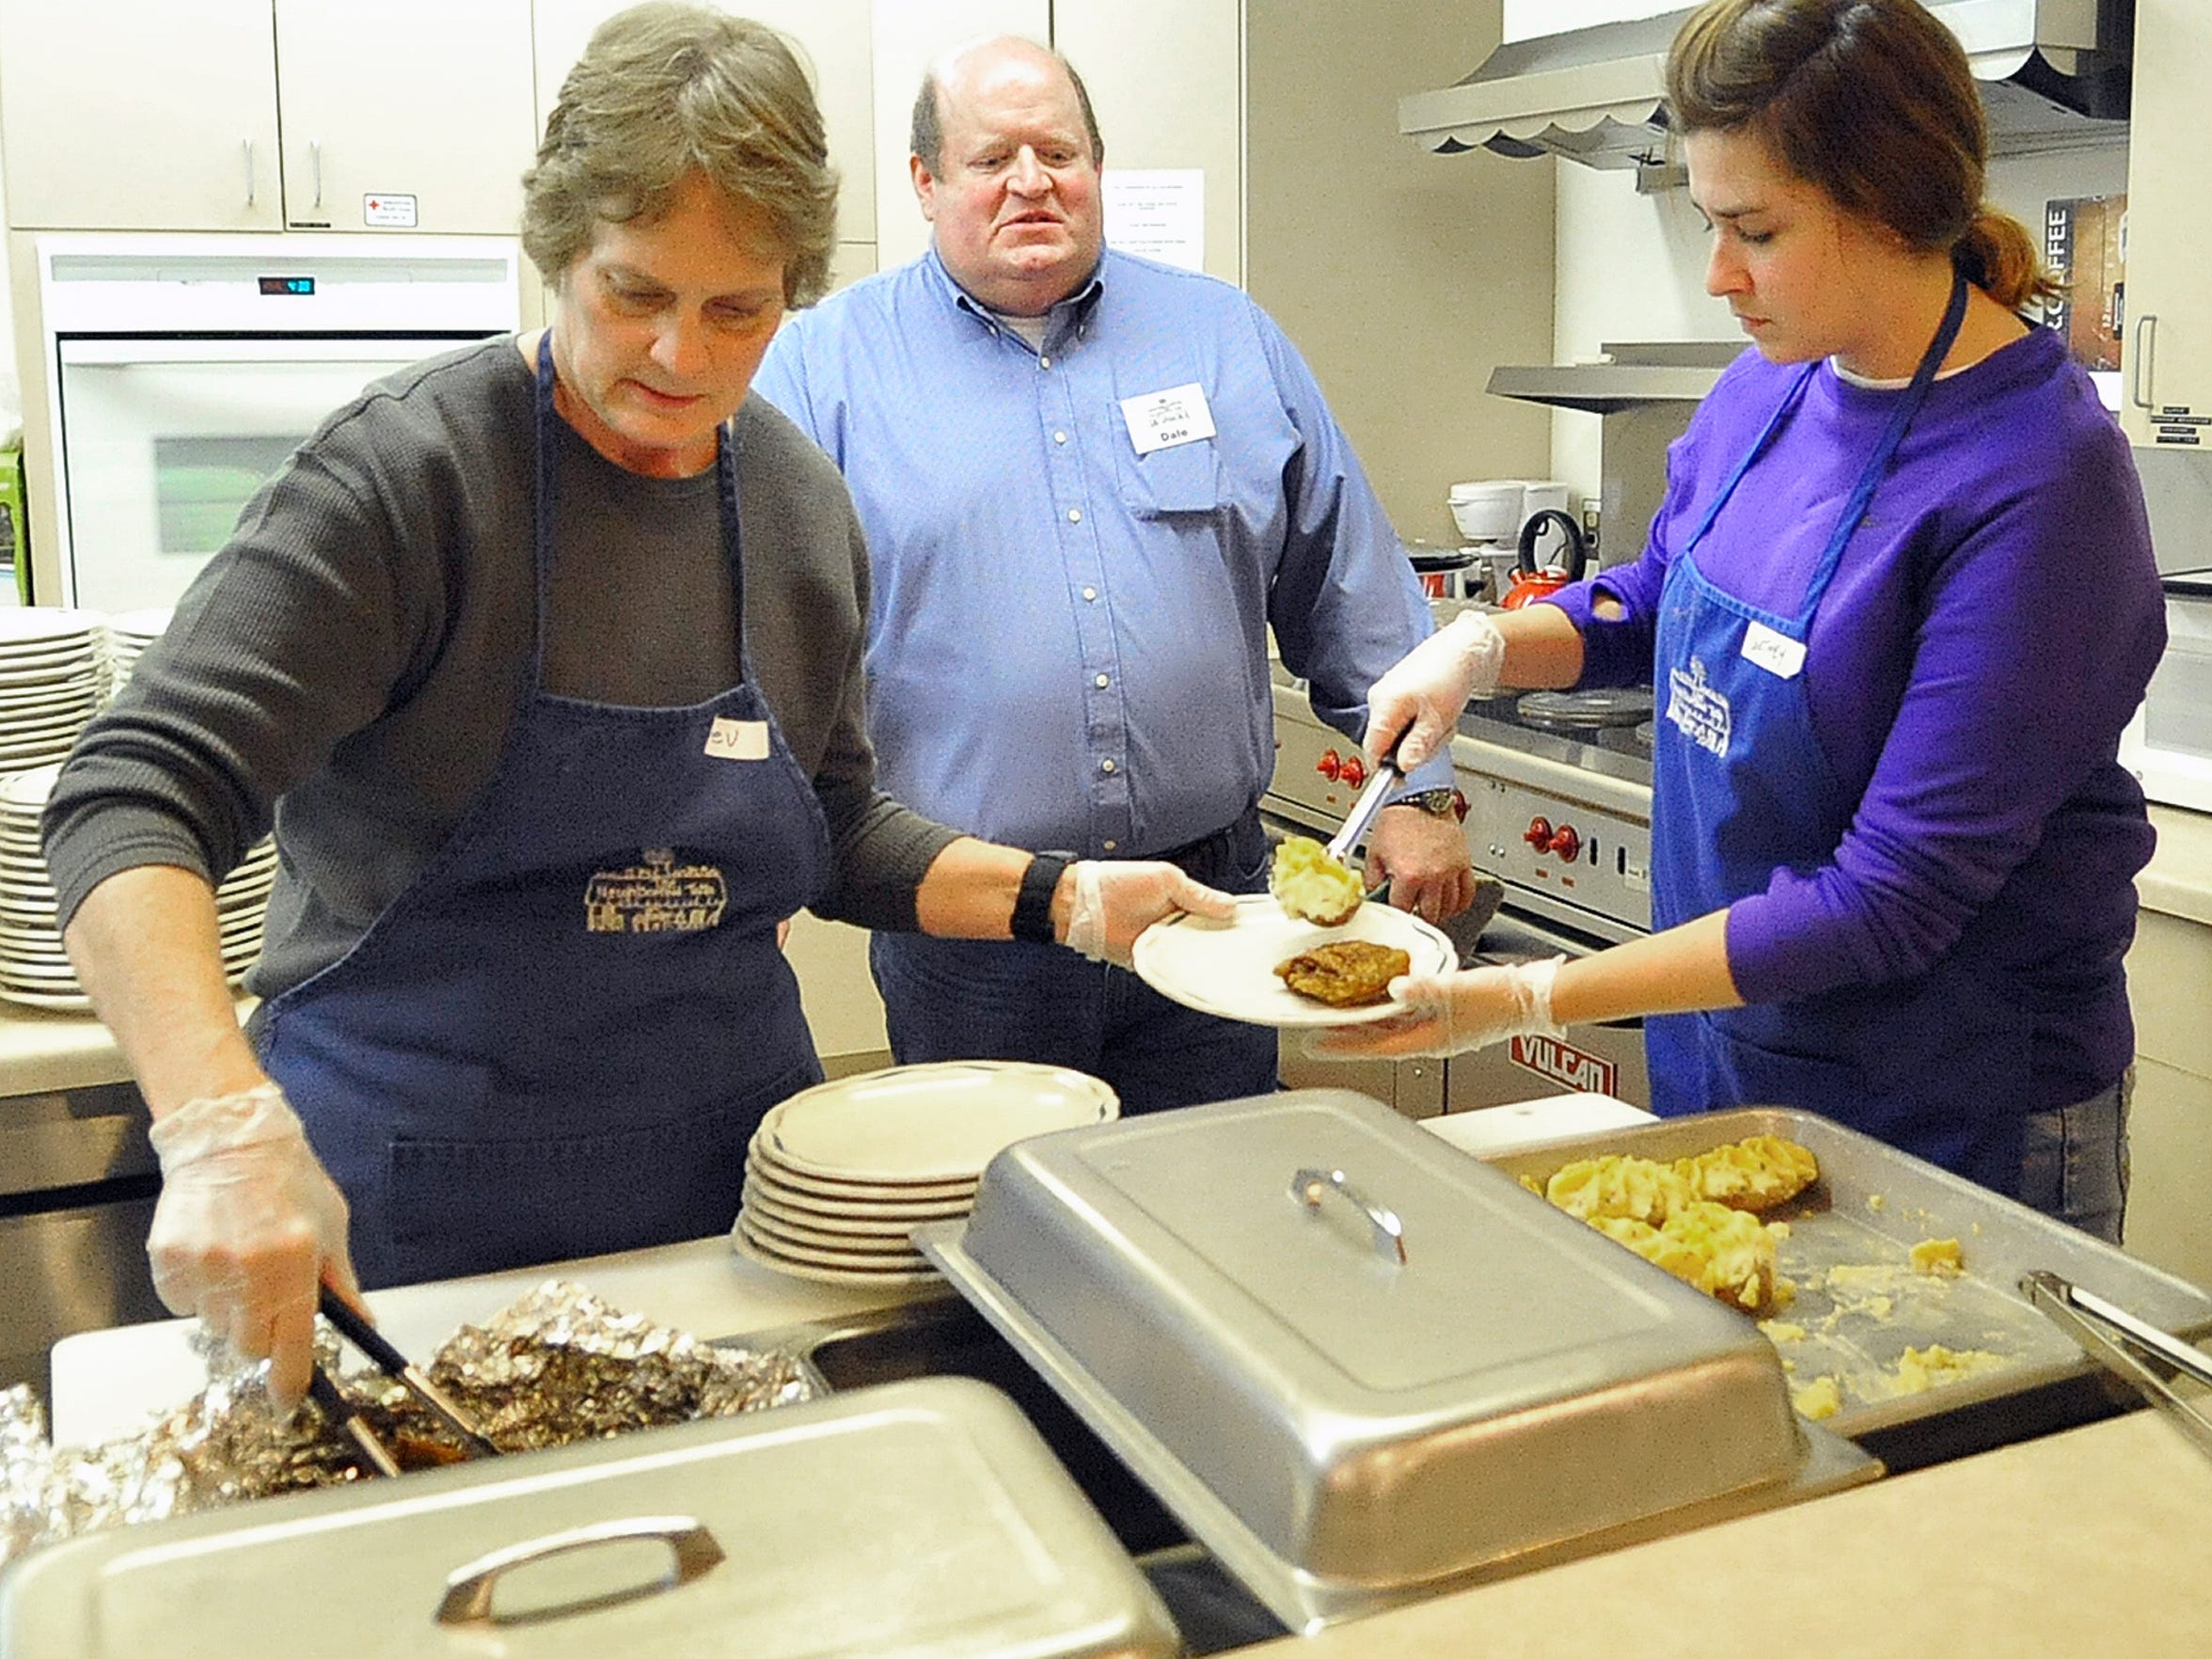 The Neighborhood Table organization President Dale Bikowski, center, watches as volunteers Bev Mason, left, and Courtney Rokus plate a meal at the organization's 10th anniversary in January 2014. The Neighborhood Table moved to United Methodist Church this month.